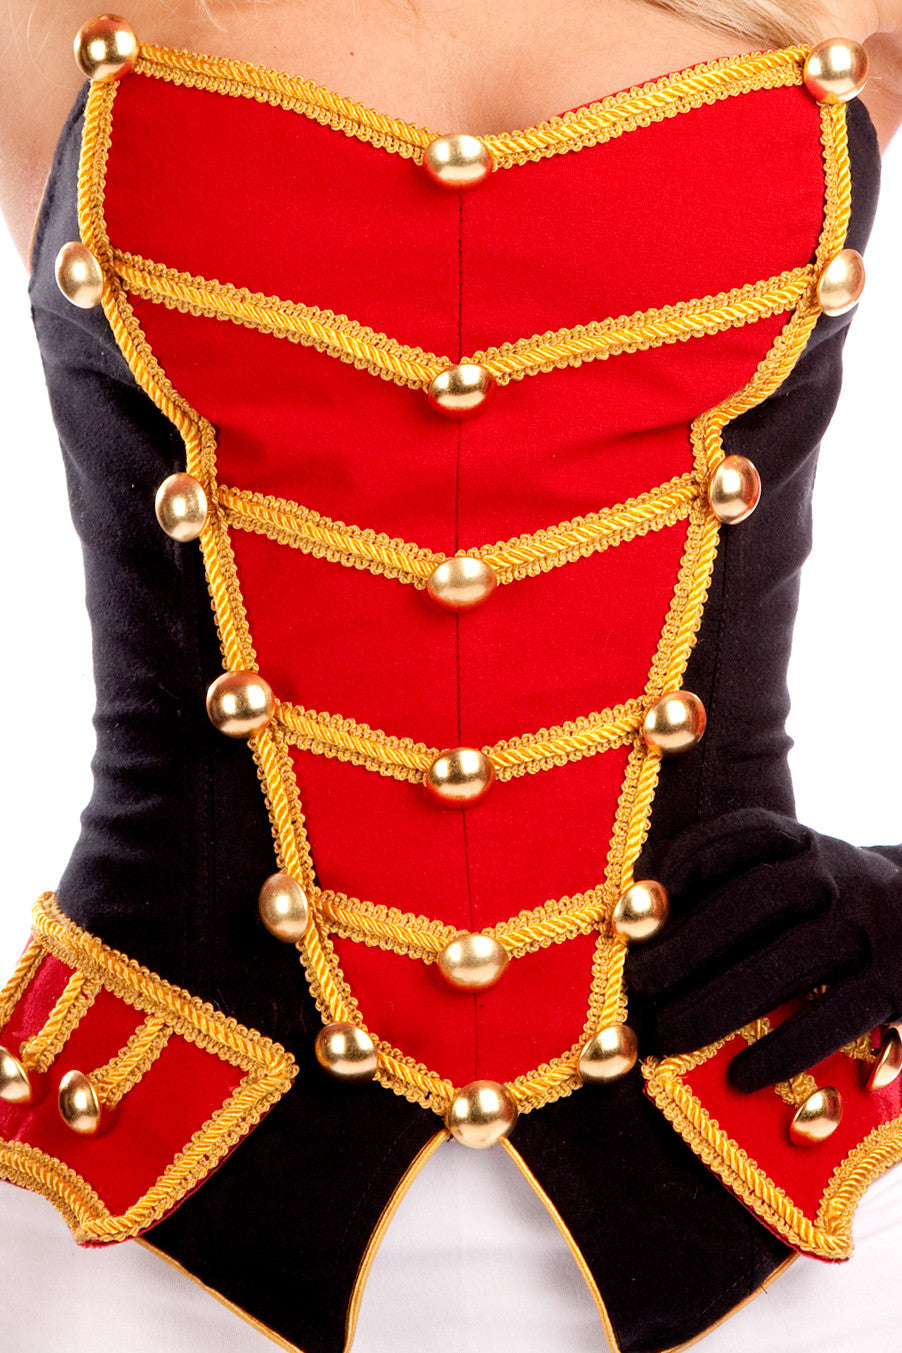 Miss Prince Deluxe Corset